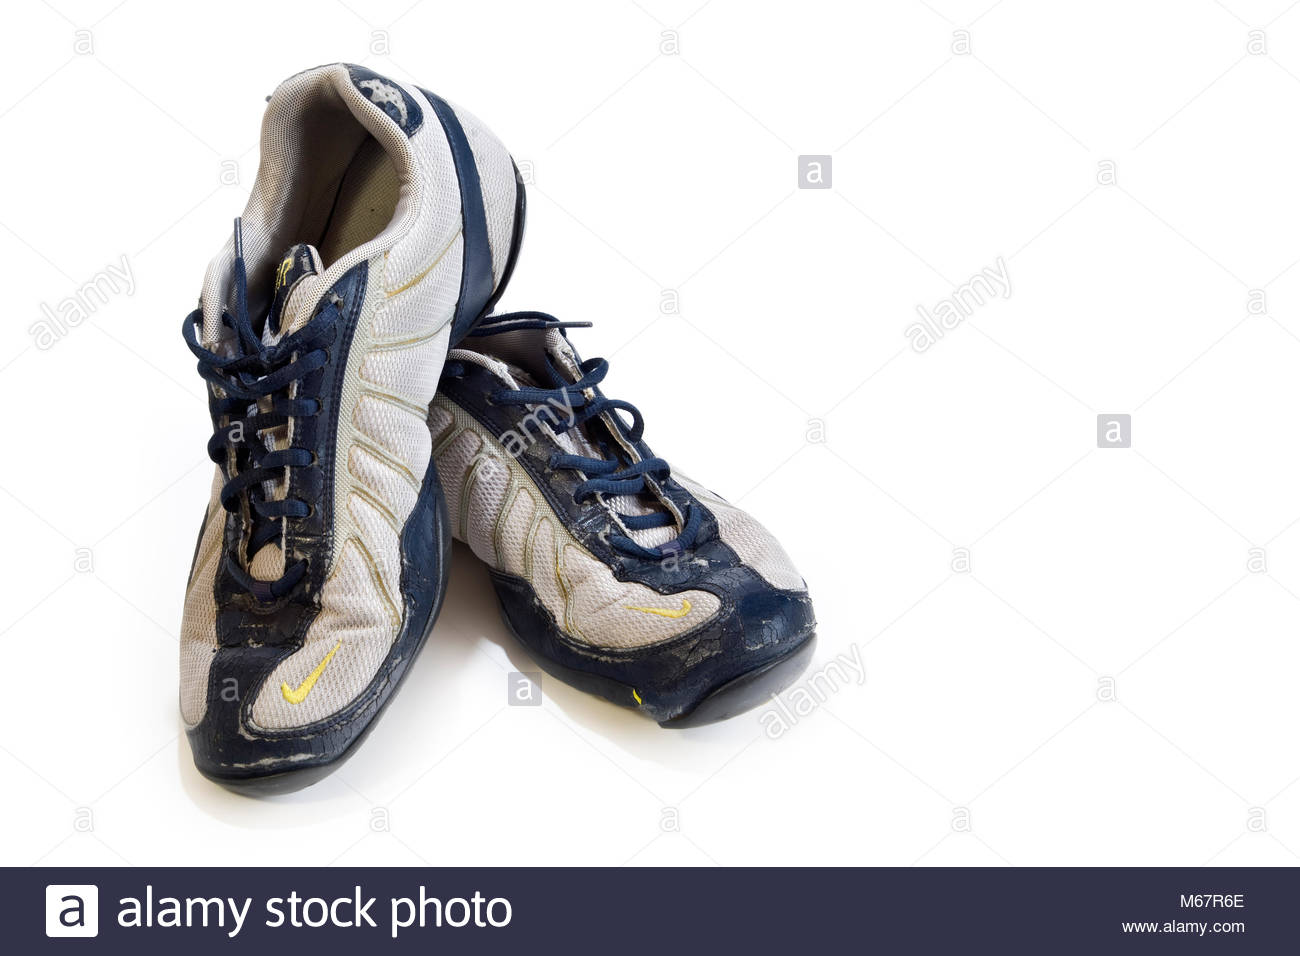 Close-up of pair of worn out trainers, isolated on white with copy space - Stock Image